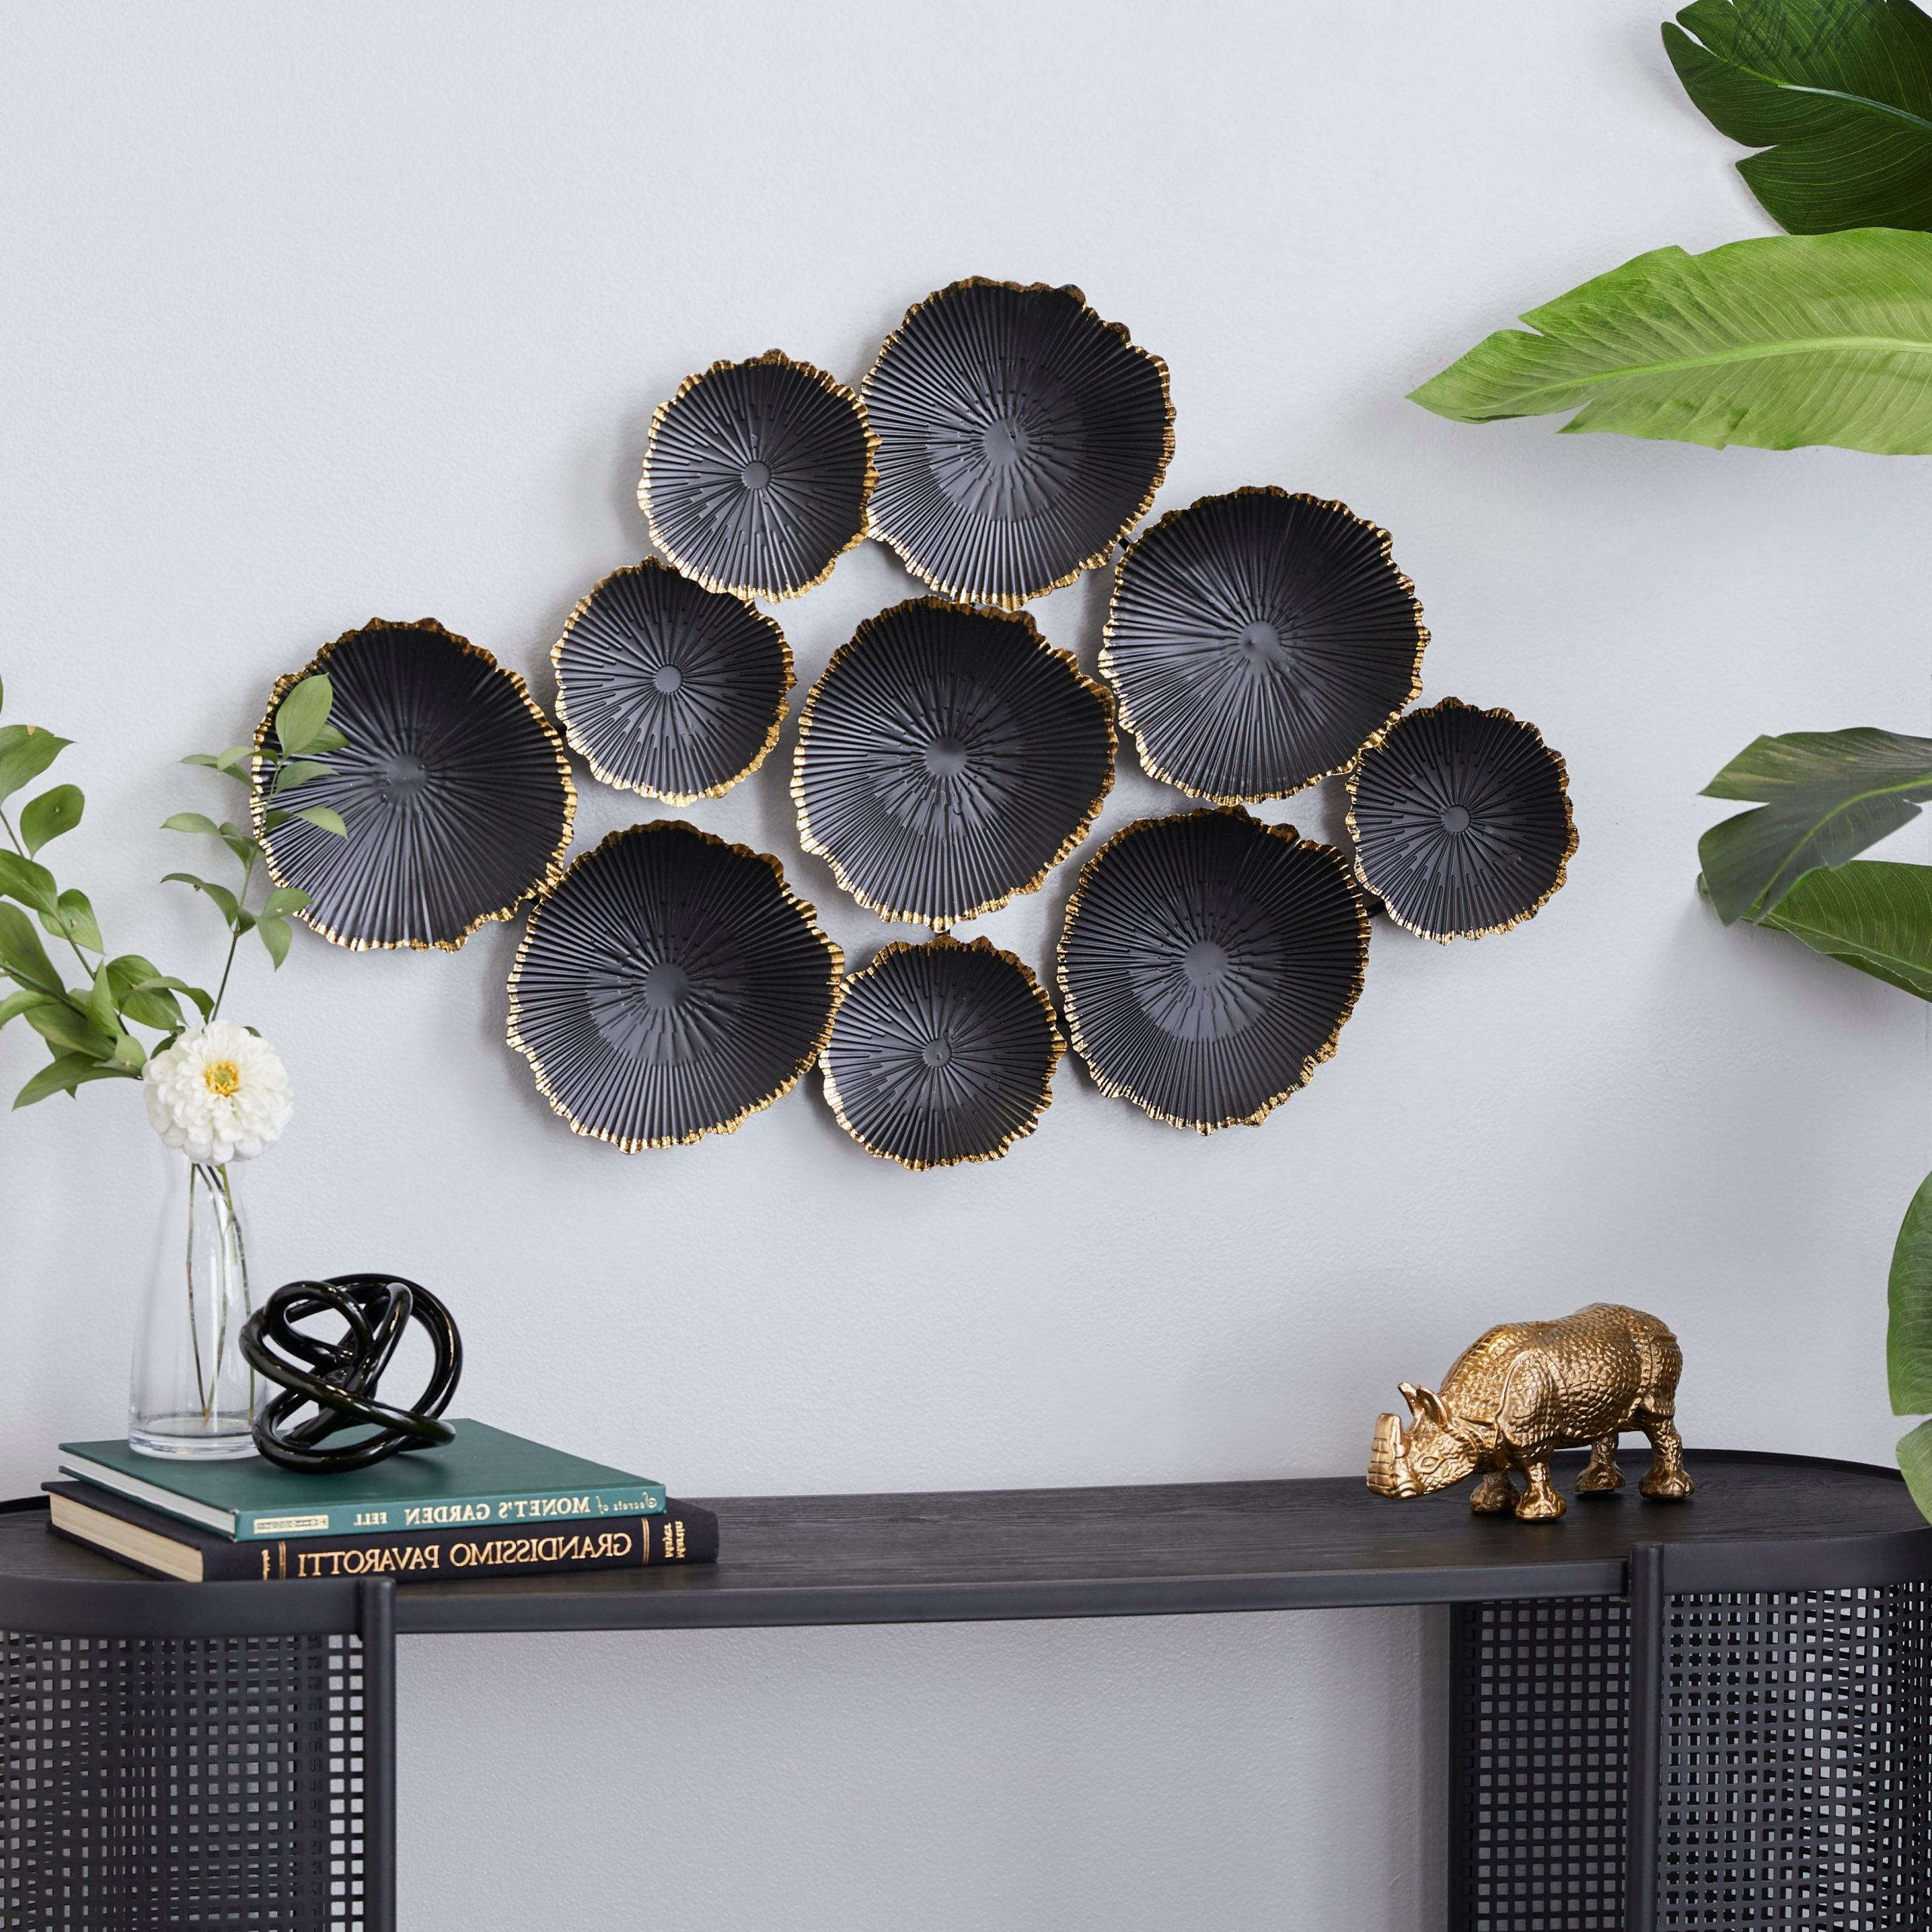 Well Known Cosmolivingcosmopolitan Black Metal Contemporary Wall Decor 23 X 26 X 2 – 26 X 2 X 23 Throughout Metal Wall Décor By Cosmoliving (View 7 of 20)